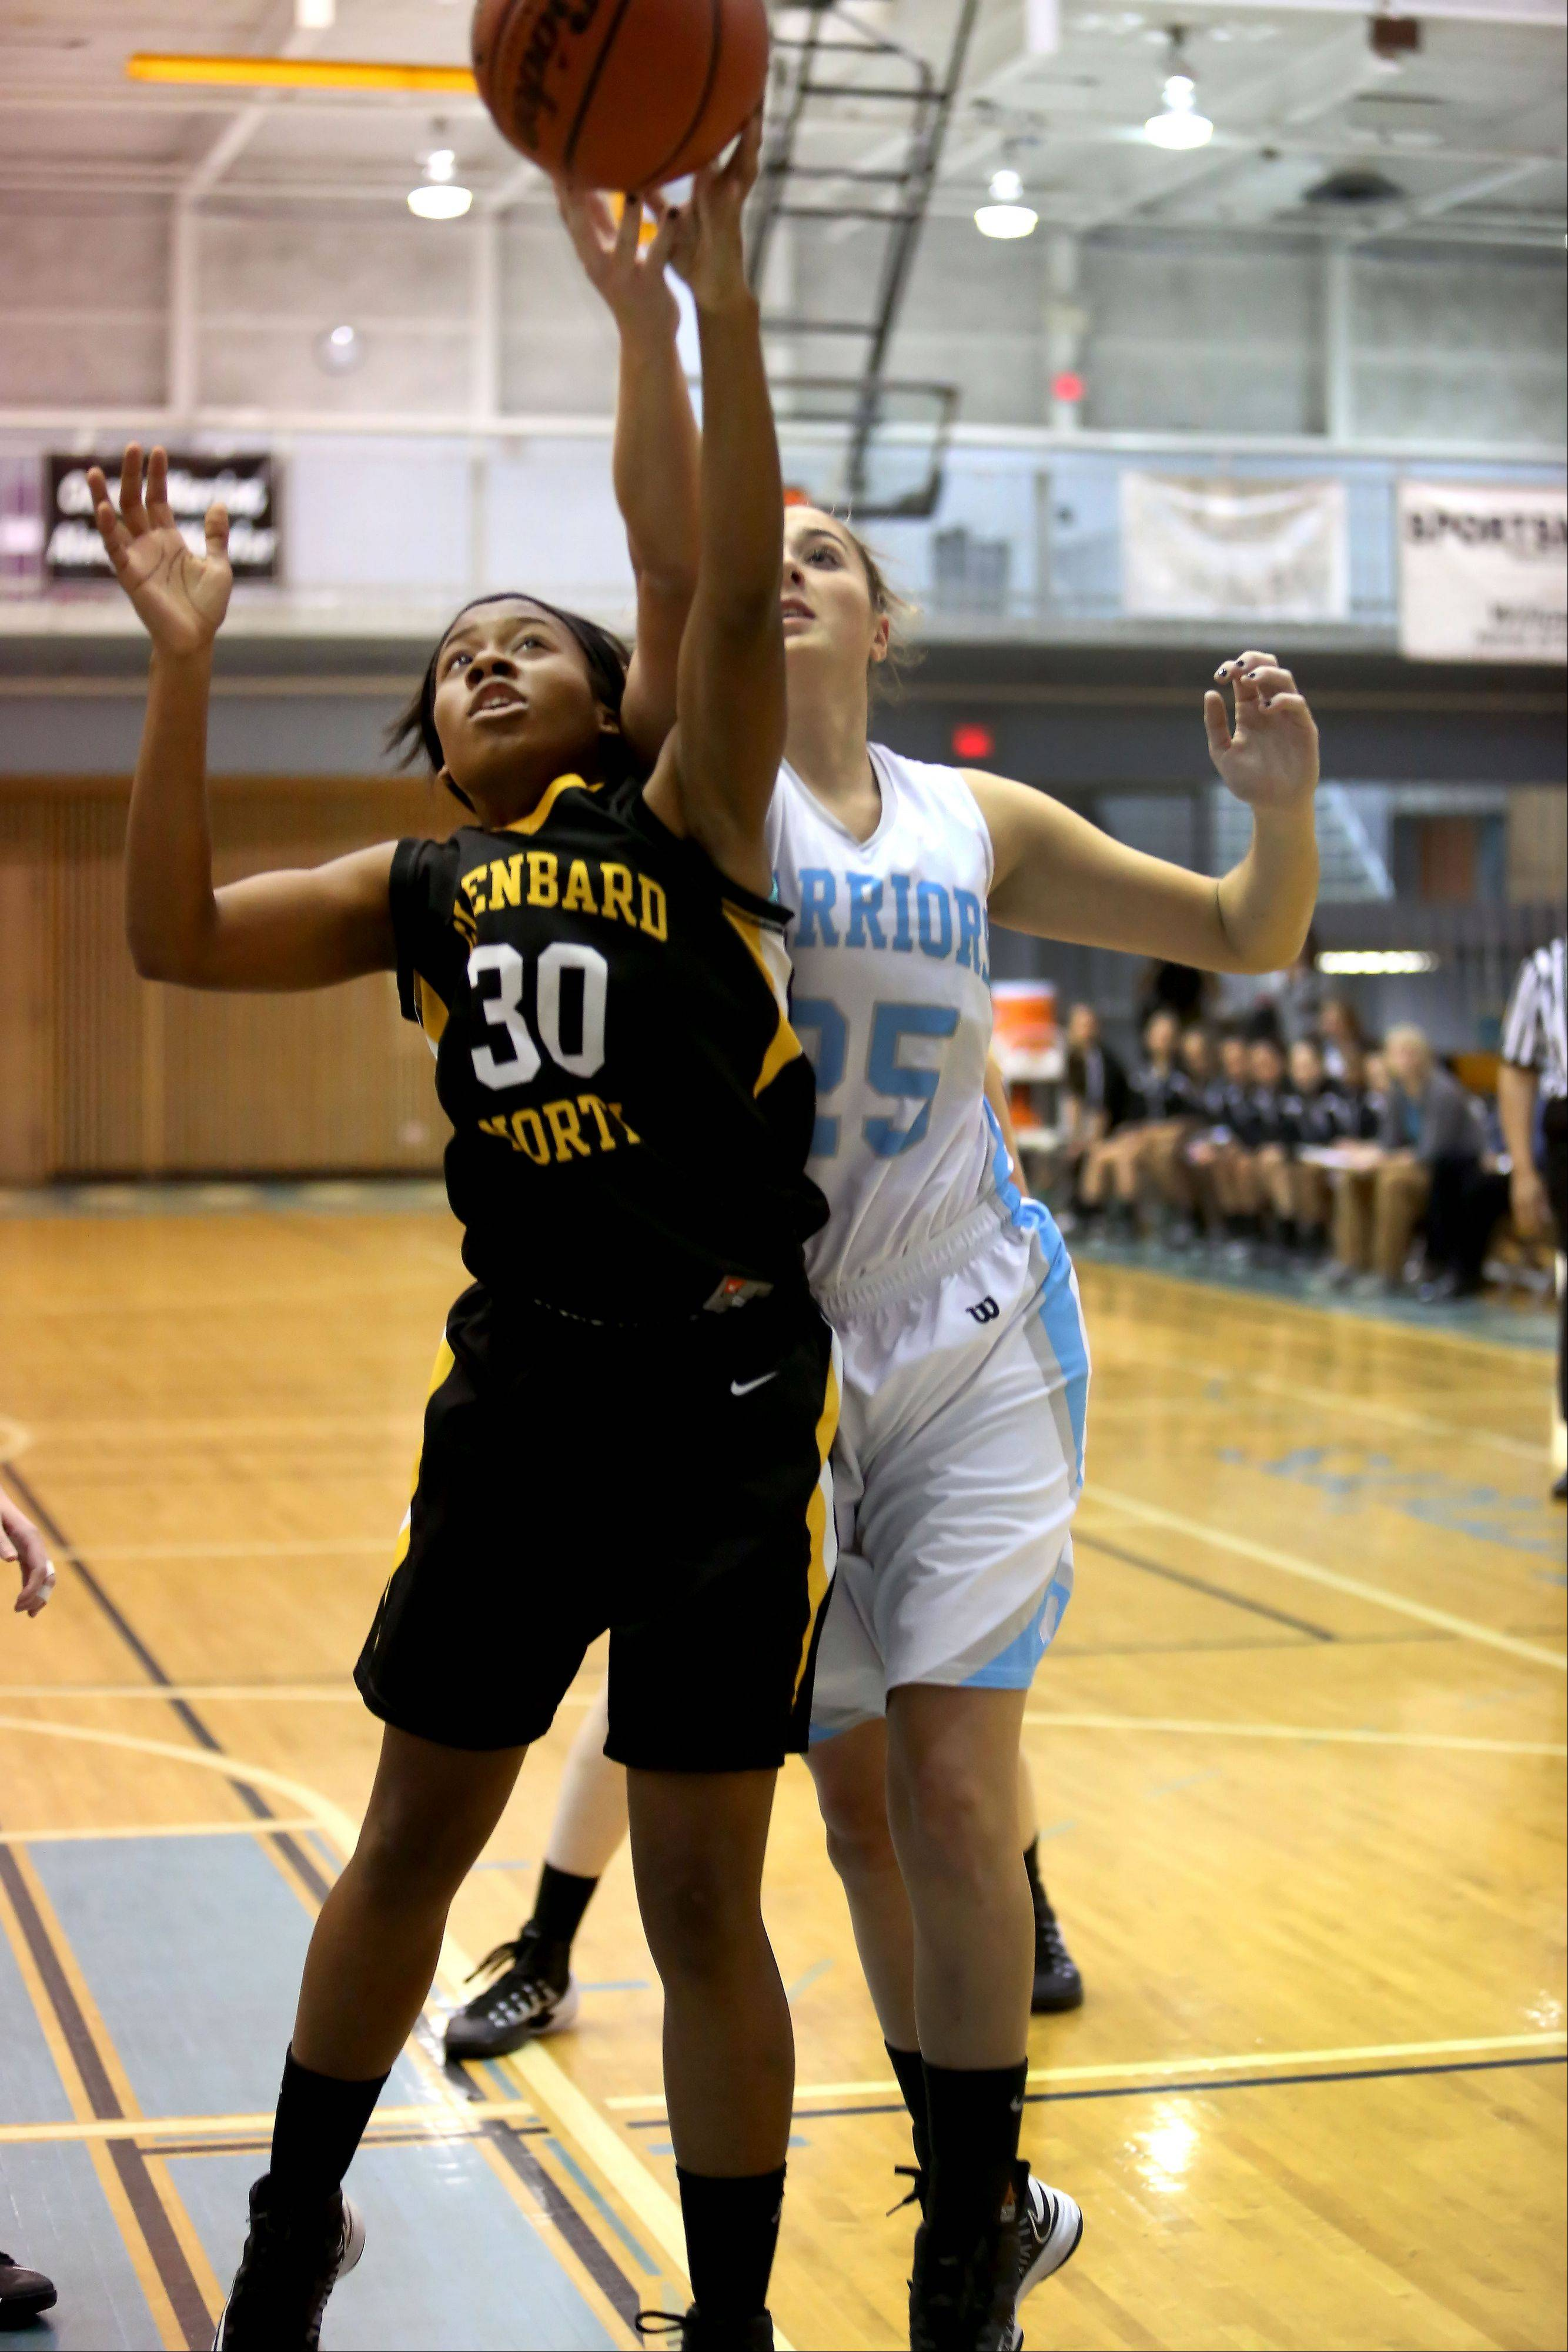 Liala Pickens, left, of Glenbard North and Samantha Schmidt, right, of Willowbrook go up for a rebound during girls basketball on Tuesday in Villa Park.